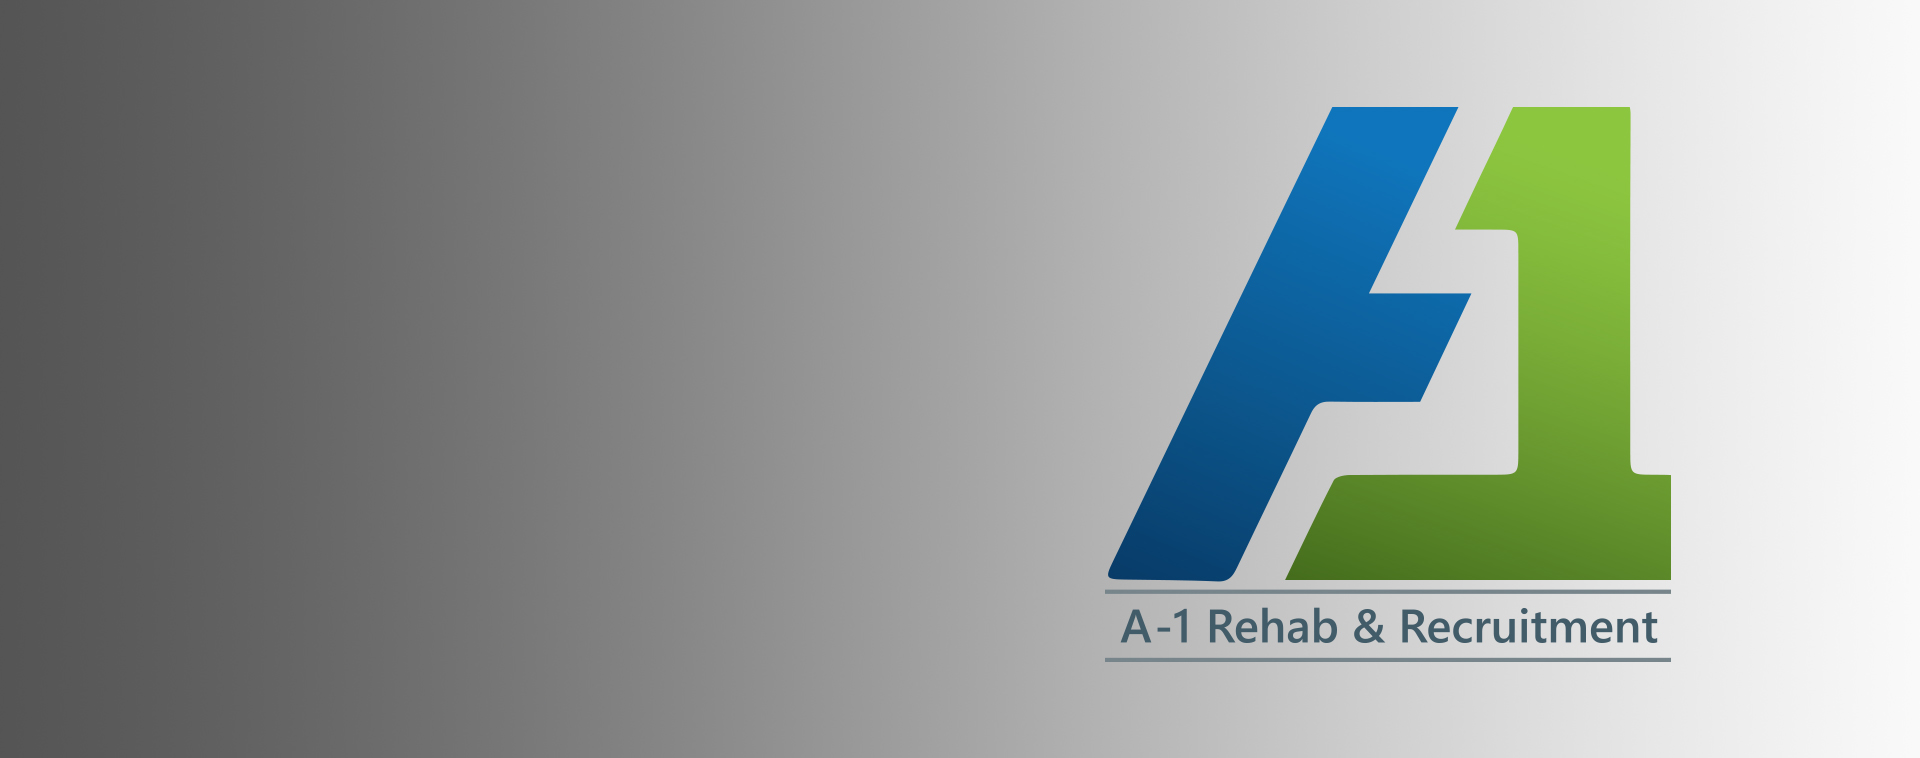 A1 Rehab & recruitment logo